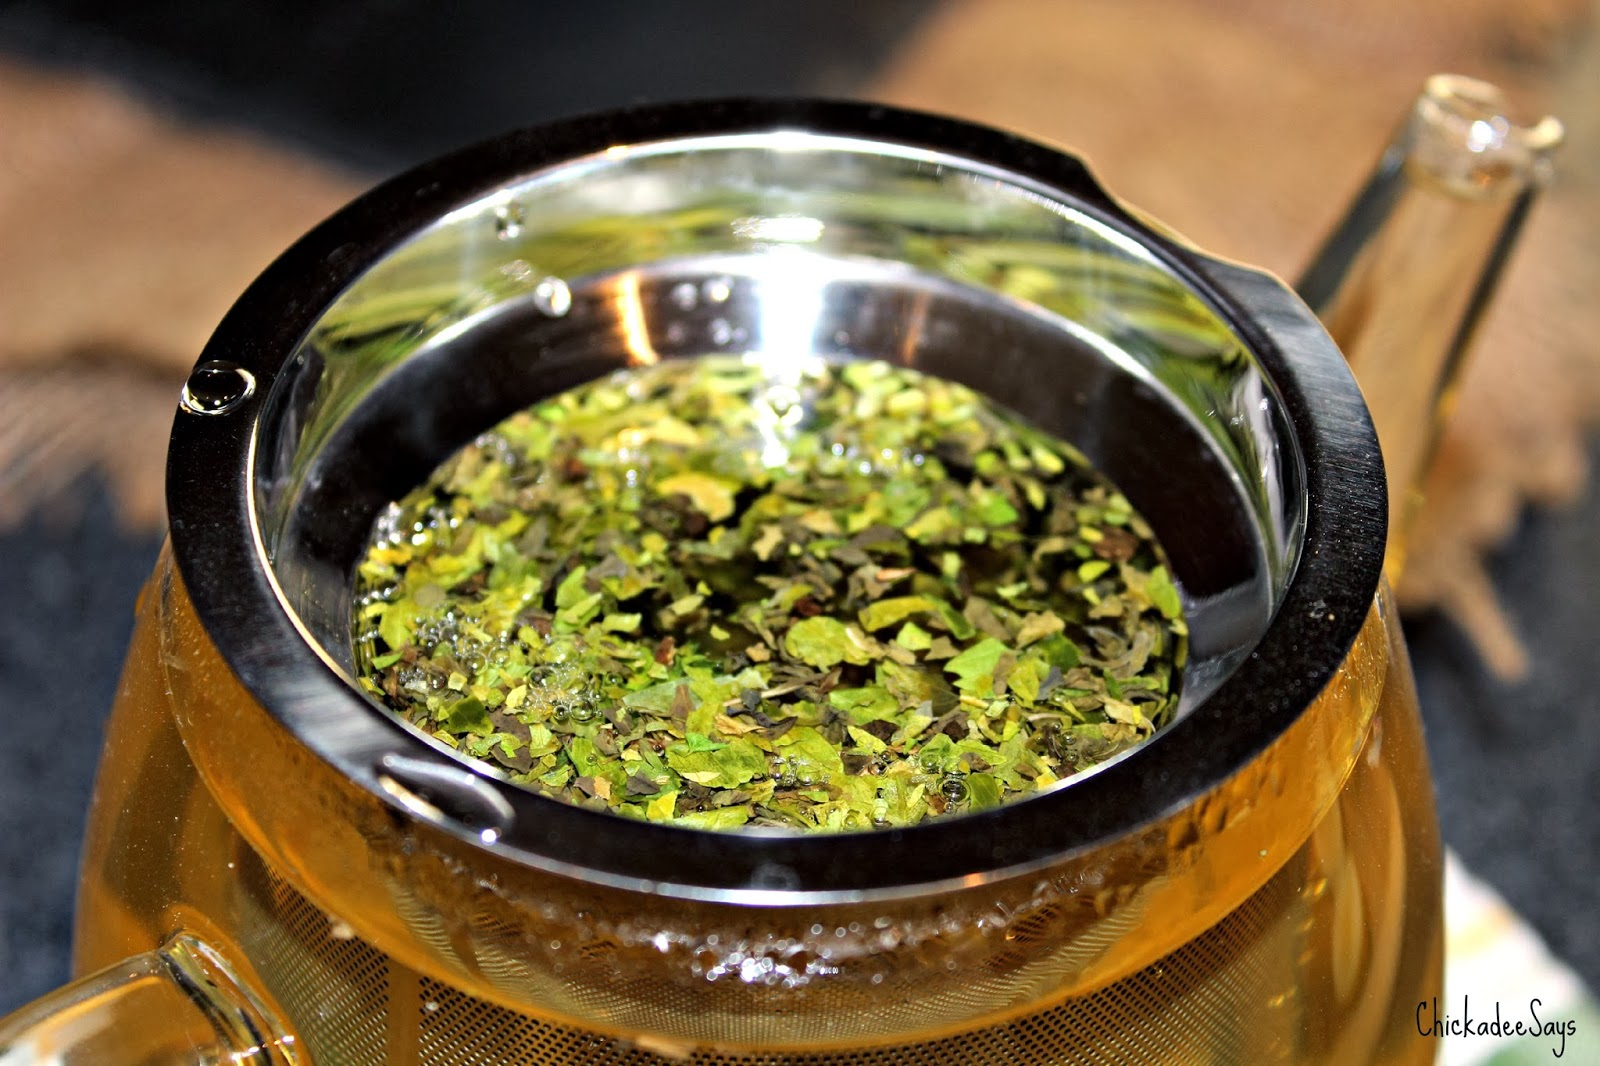 Pour hot water over the dried herbal mixture, cover, and let the hot water steep for 8-10 minutes.